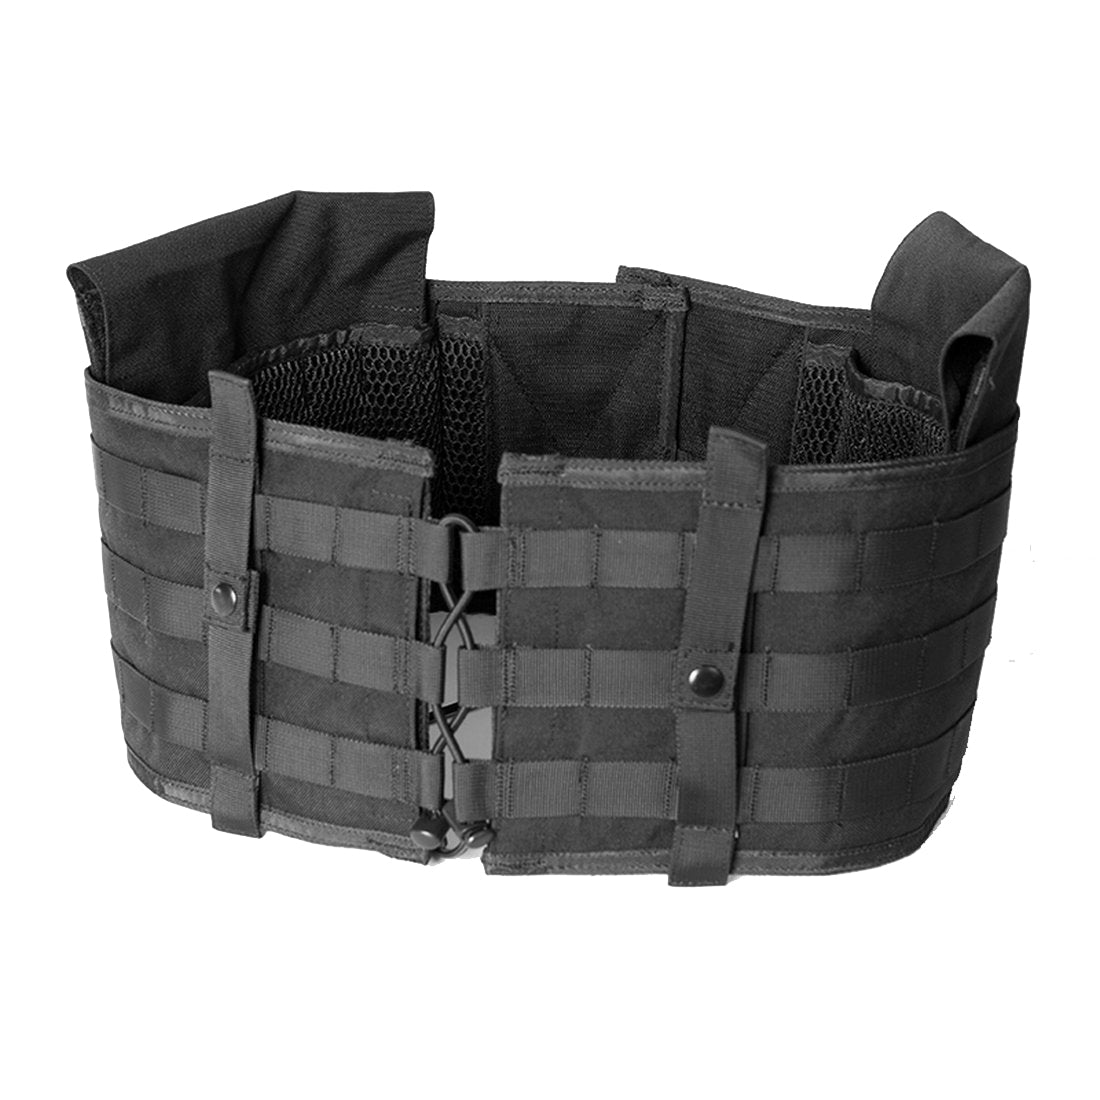 Tactical Plate Carrier - SecPro Cummerbund for Spartan